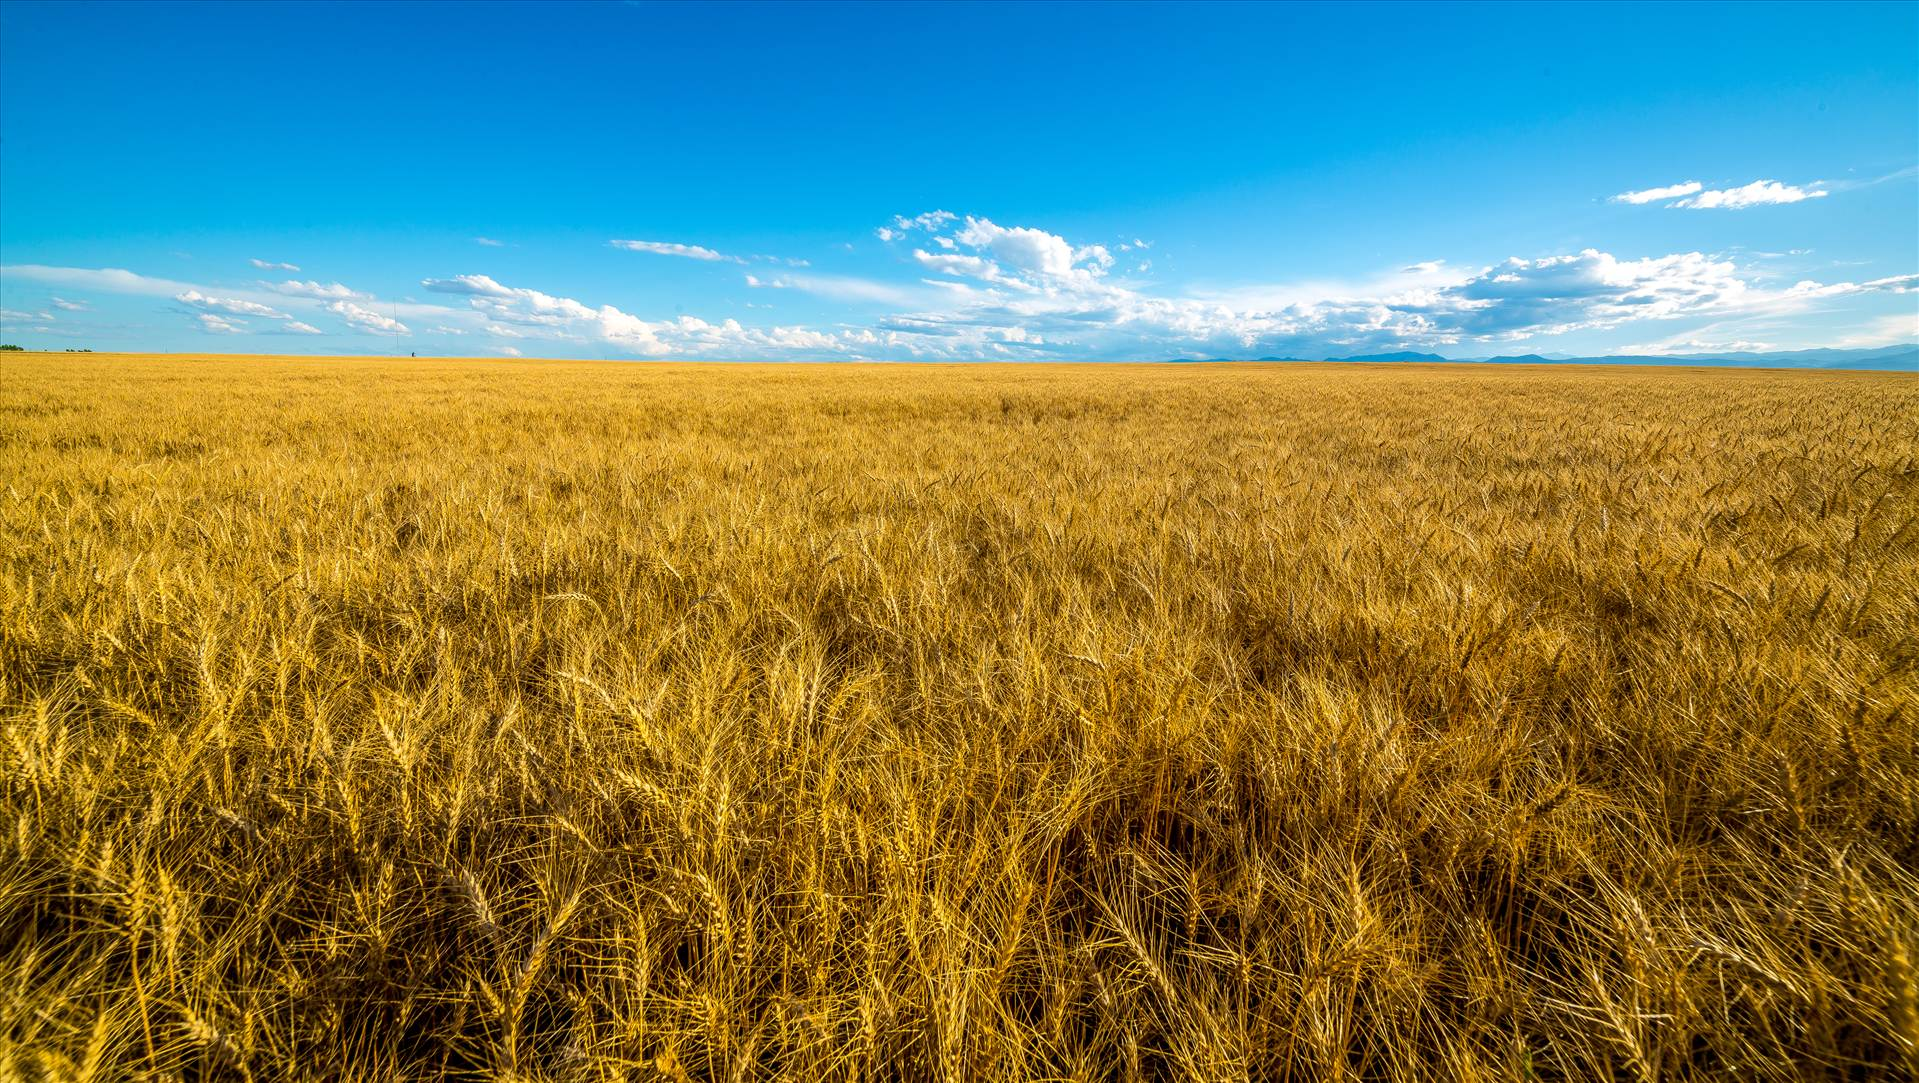 Summer Fields I - Wheat fields near Longmont, Colorado by D Scott Smith